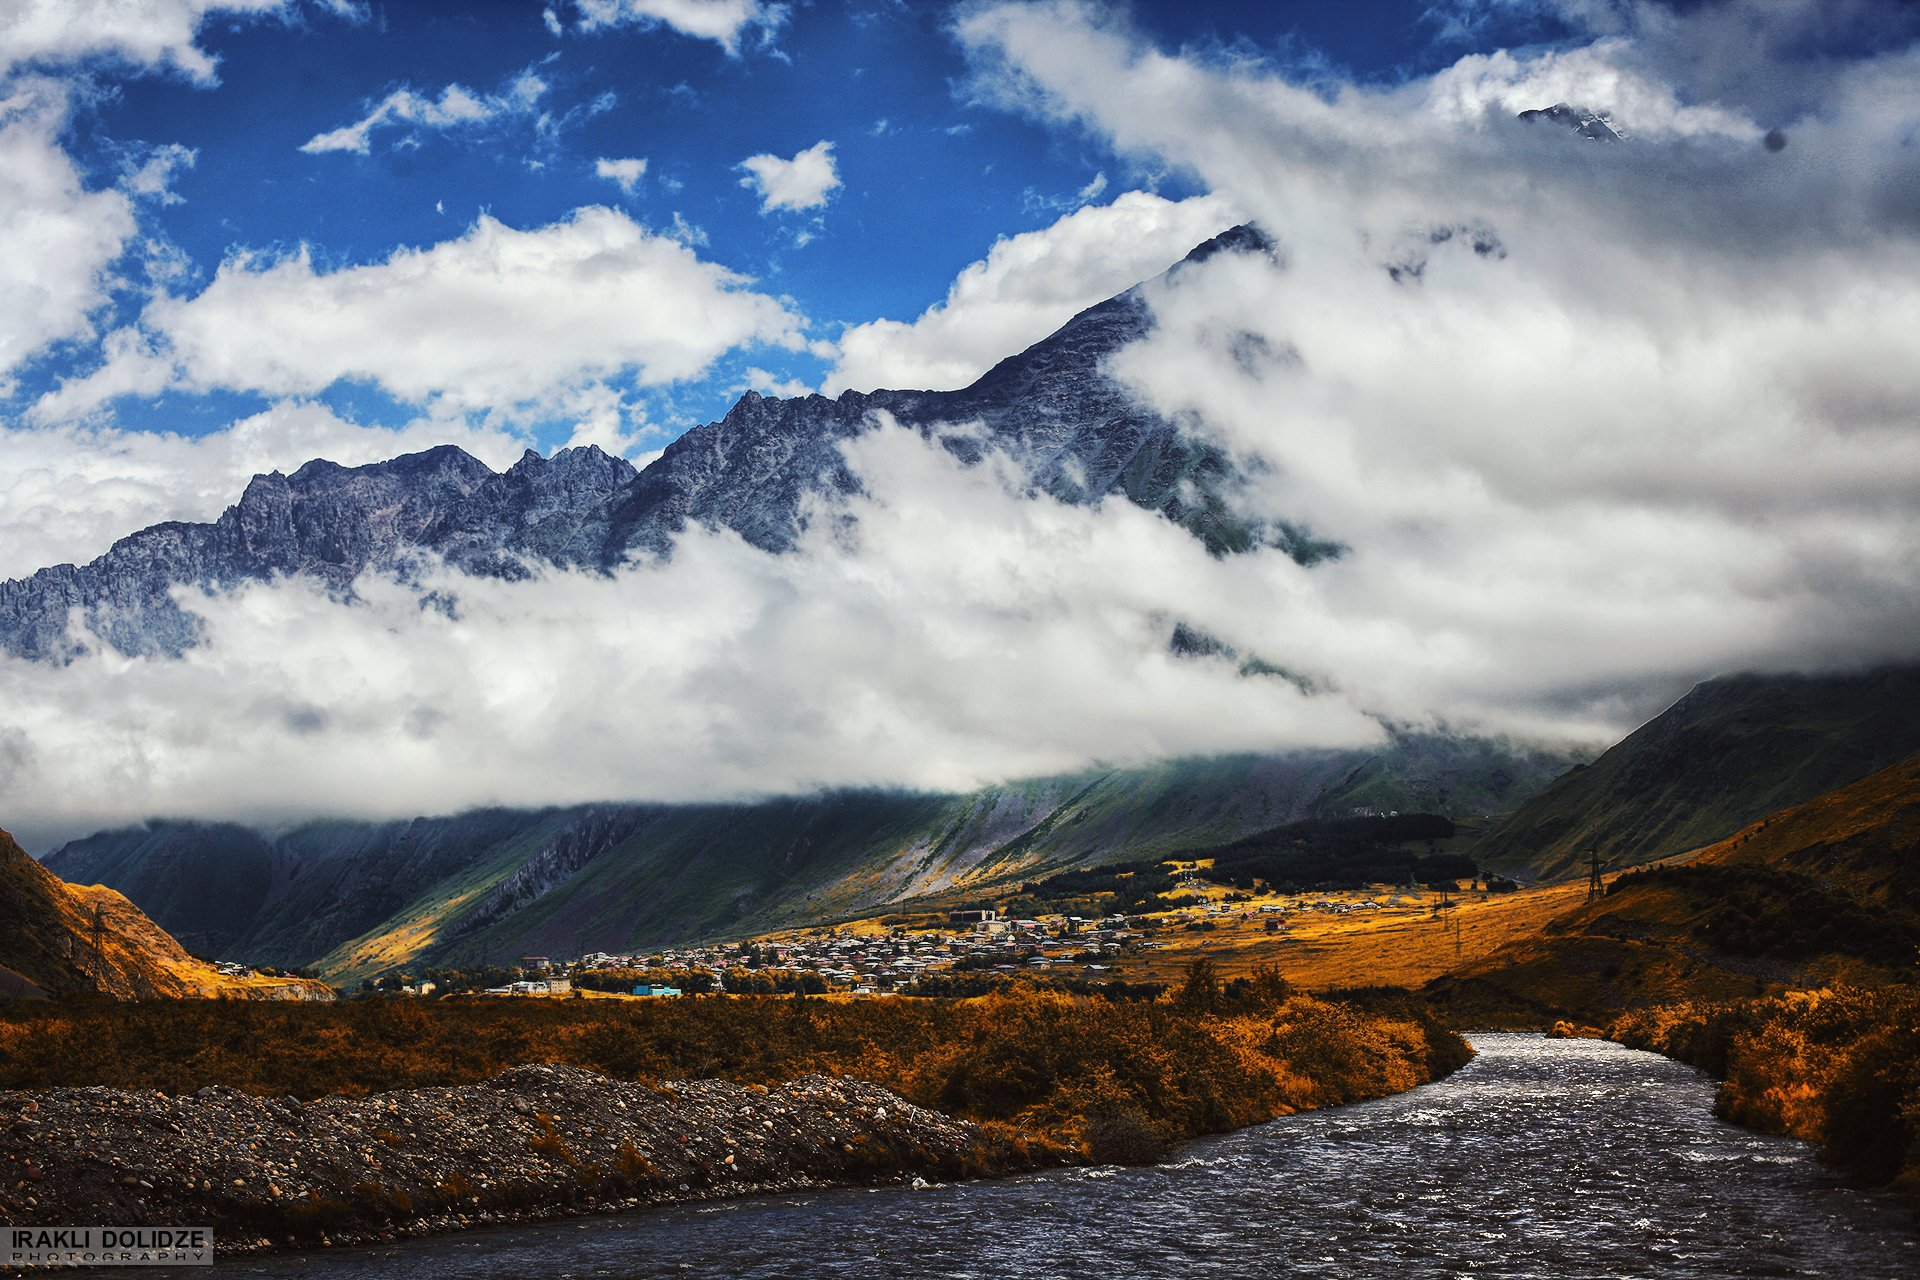 landscape, mountain, river, outdoor, hiking, canon, photography, colored, autumn, clouds, sky,, ირაკლი დოლიძე